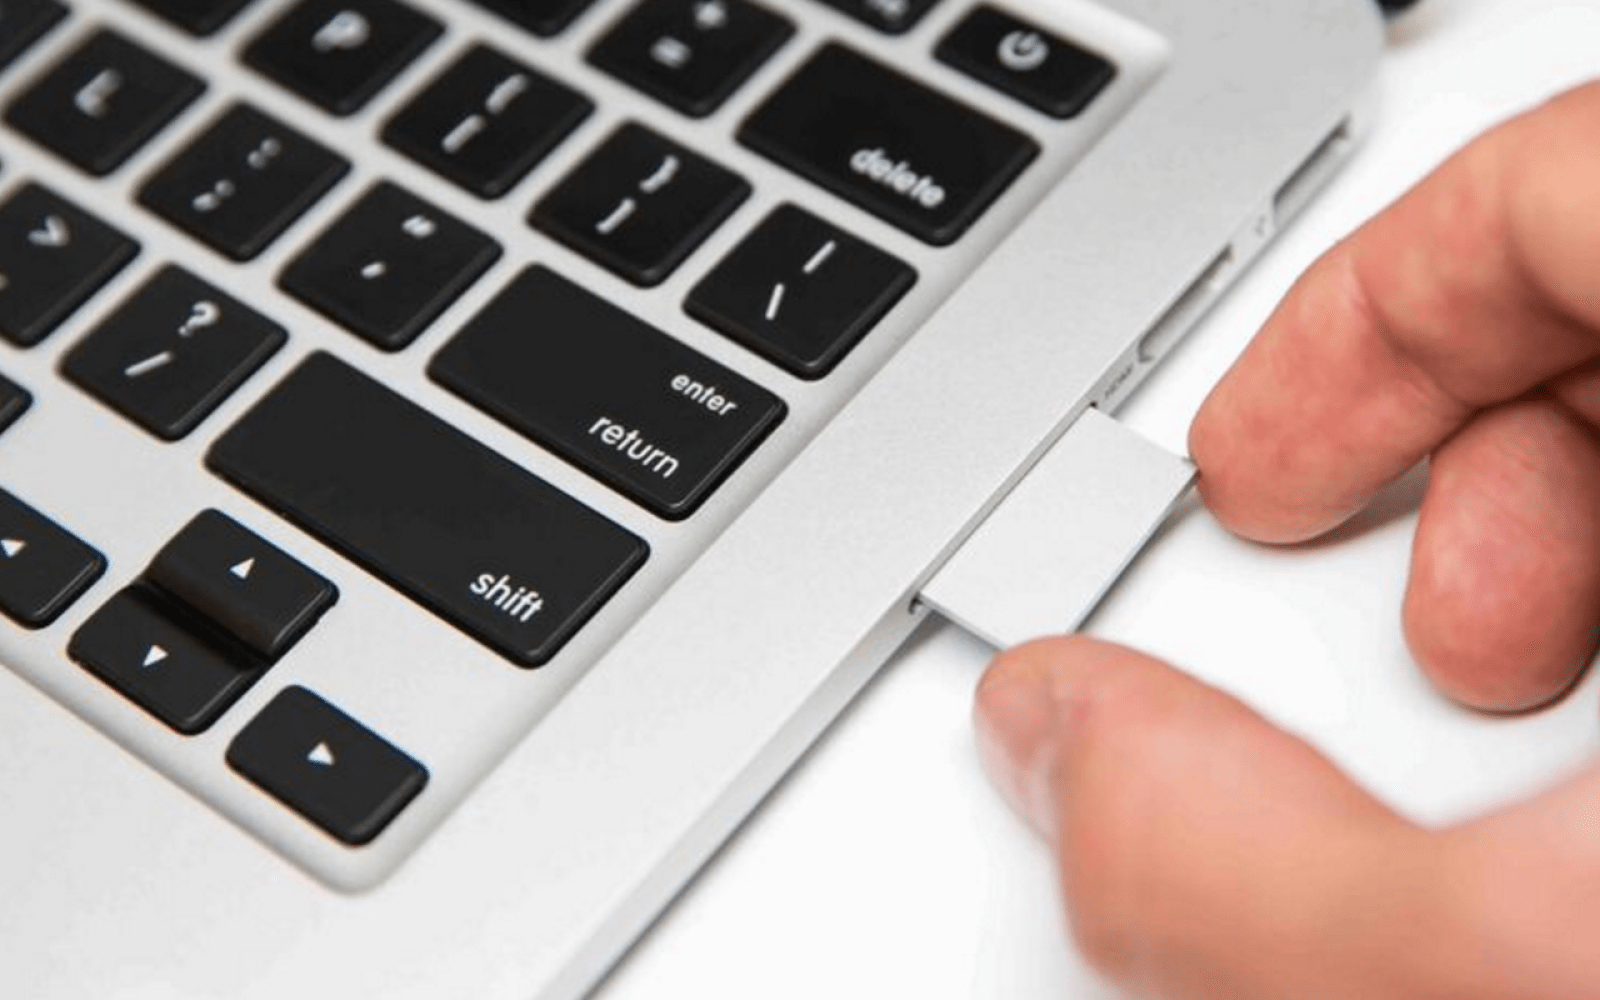 TarDisk Pear promises to double your MacBook's HD by creating an SD card-based fusion drive